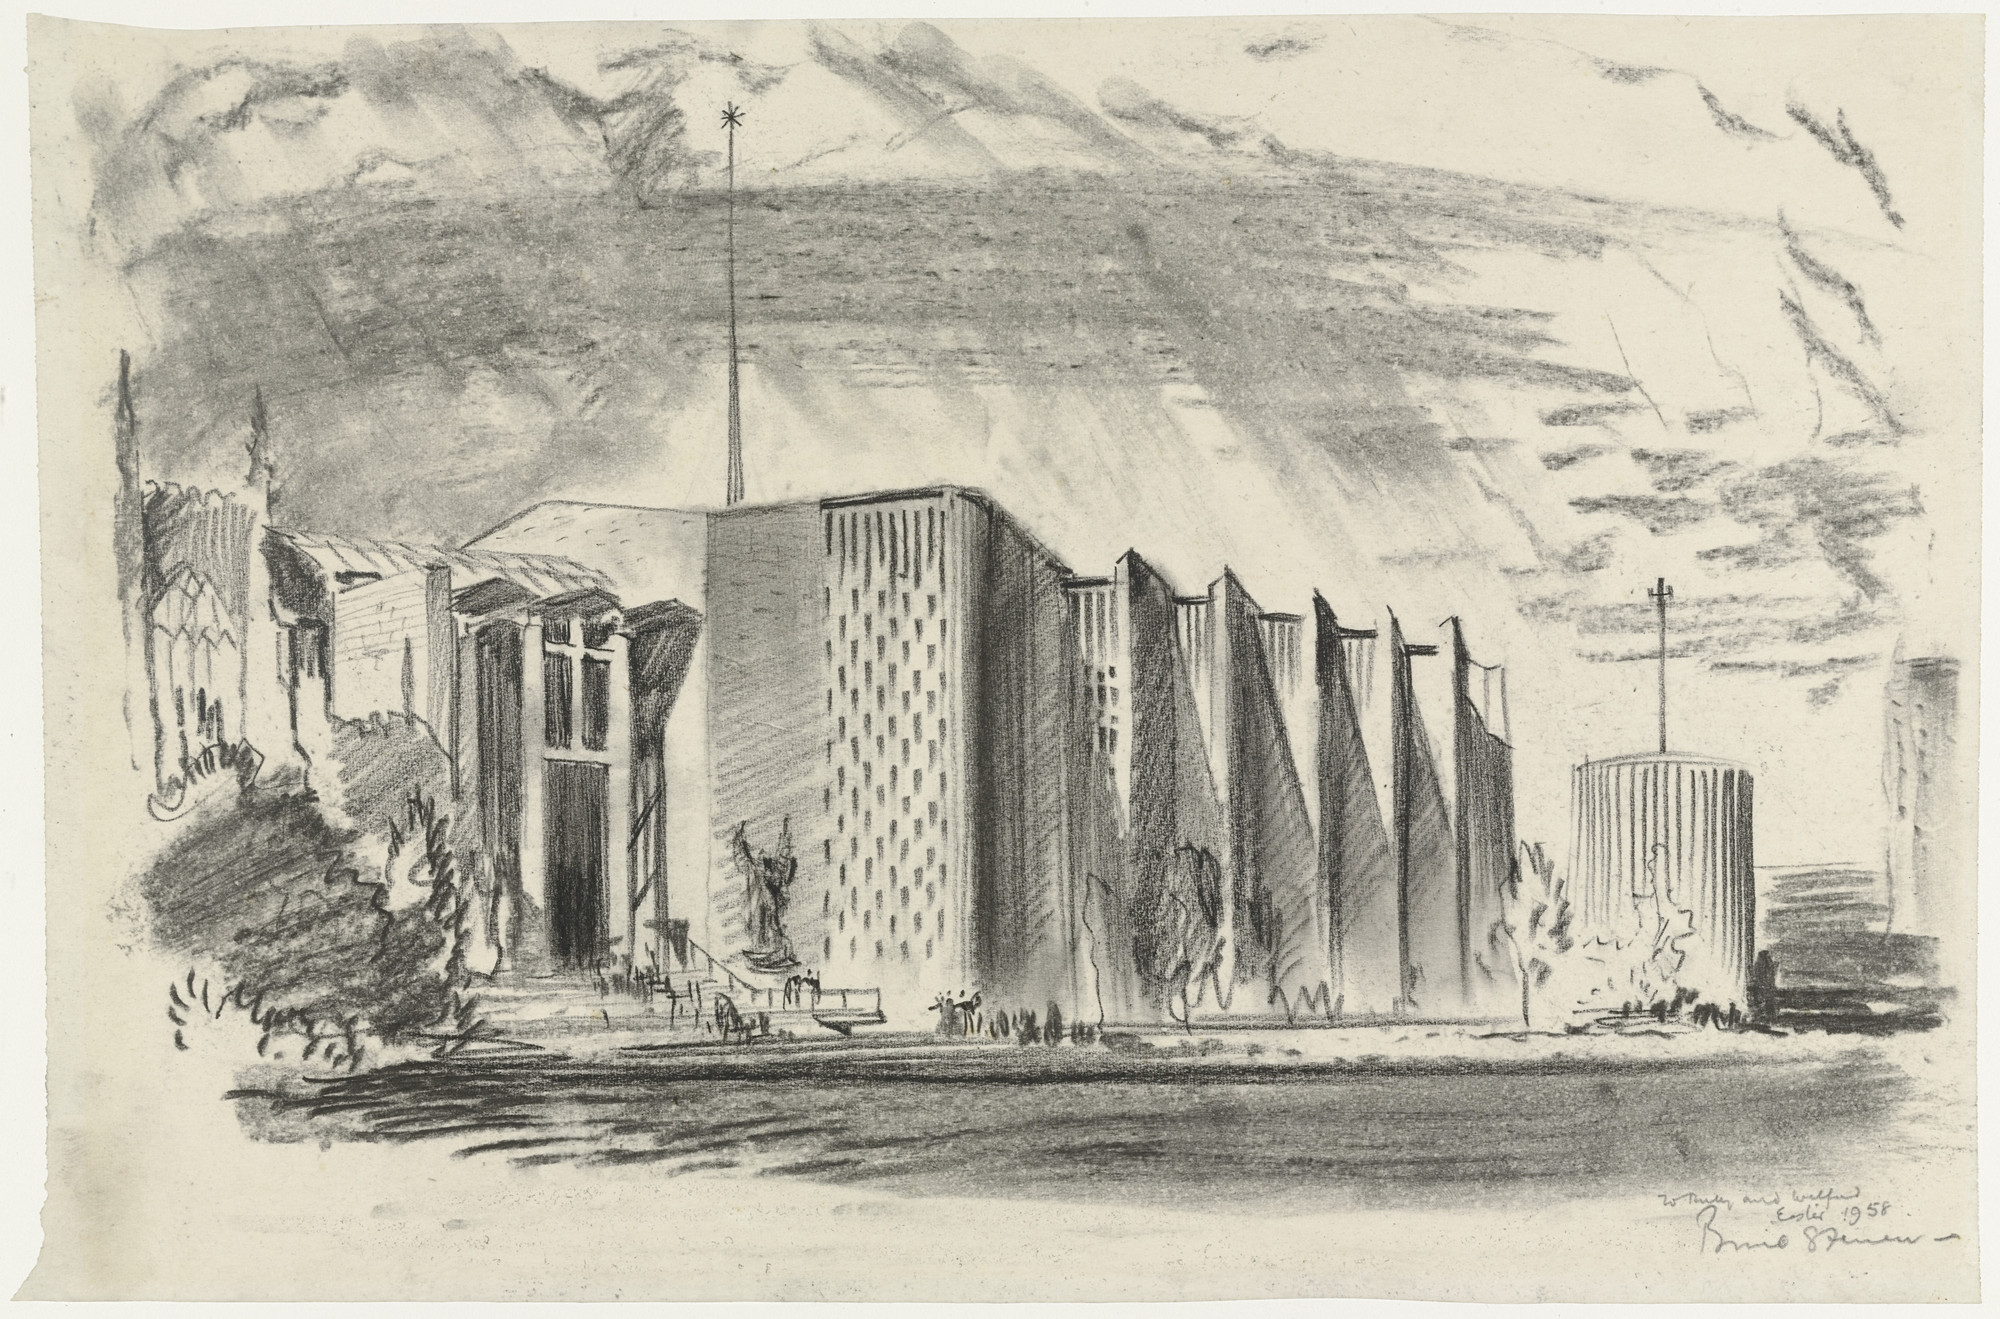 Basil Spence. Coventry Cathedral, Coventry, England, Perspective sketch. 1958